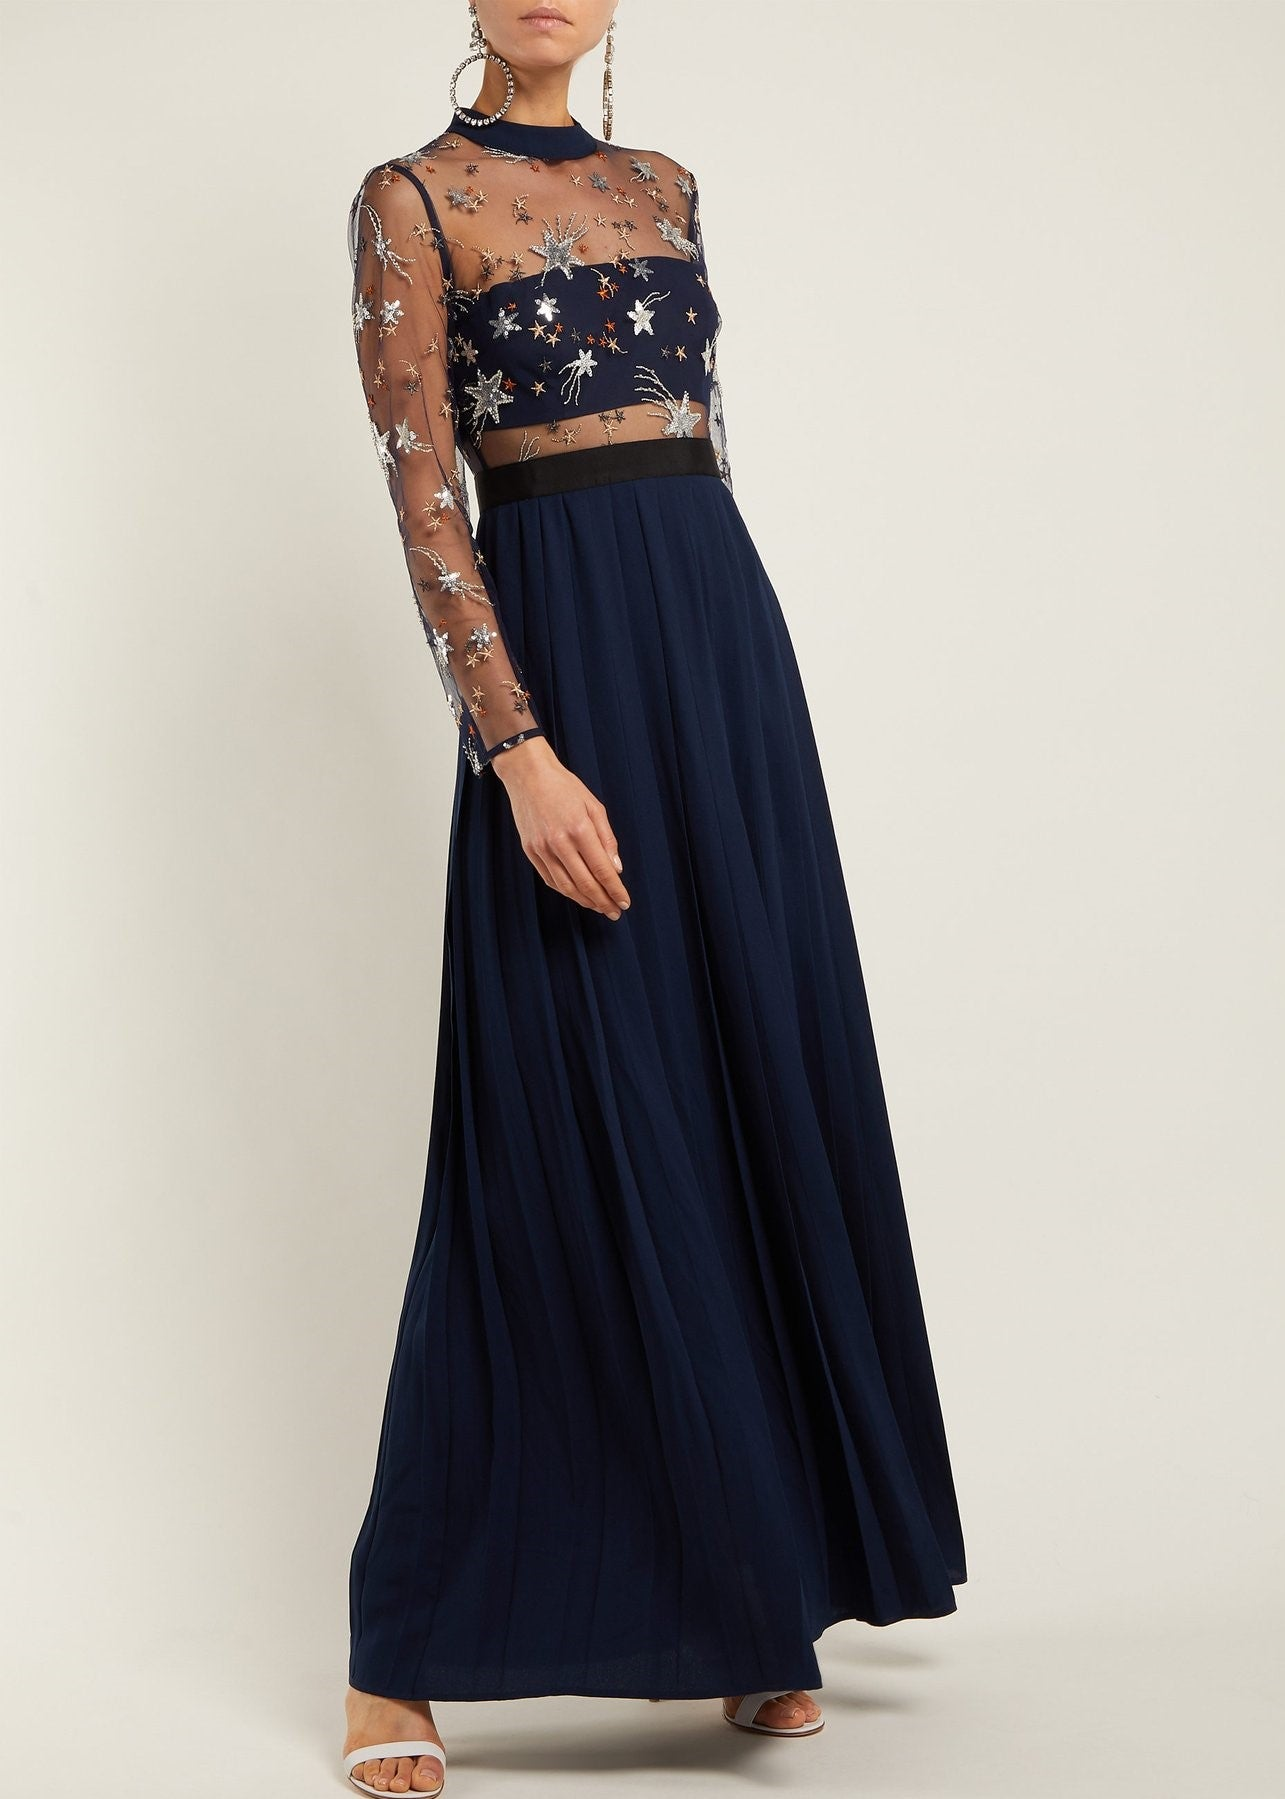 Self Portrait star tulle embellished maxi dress in blue